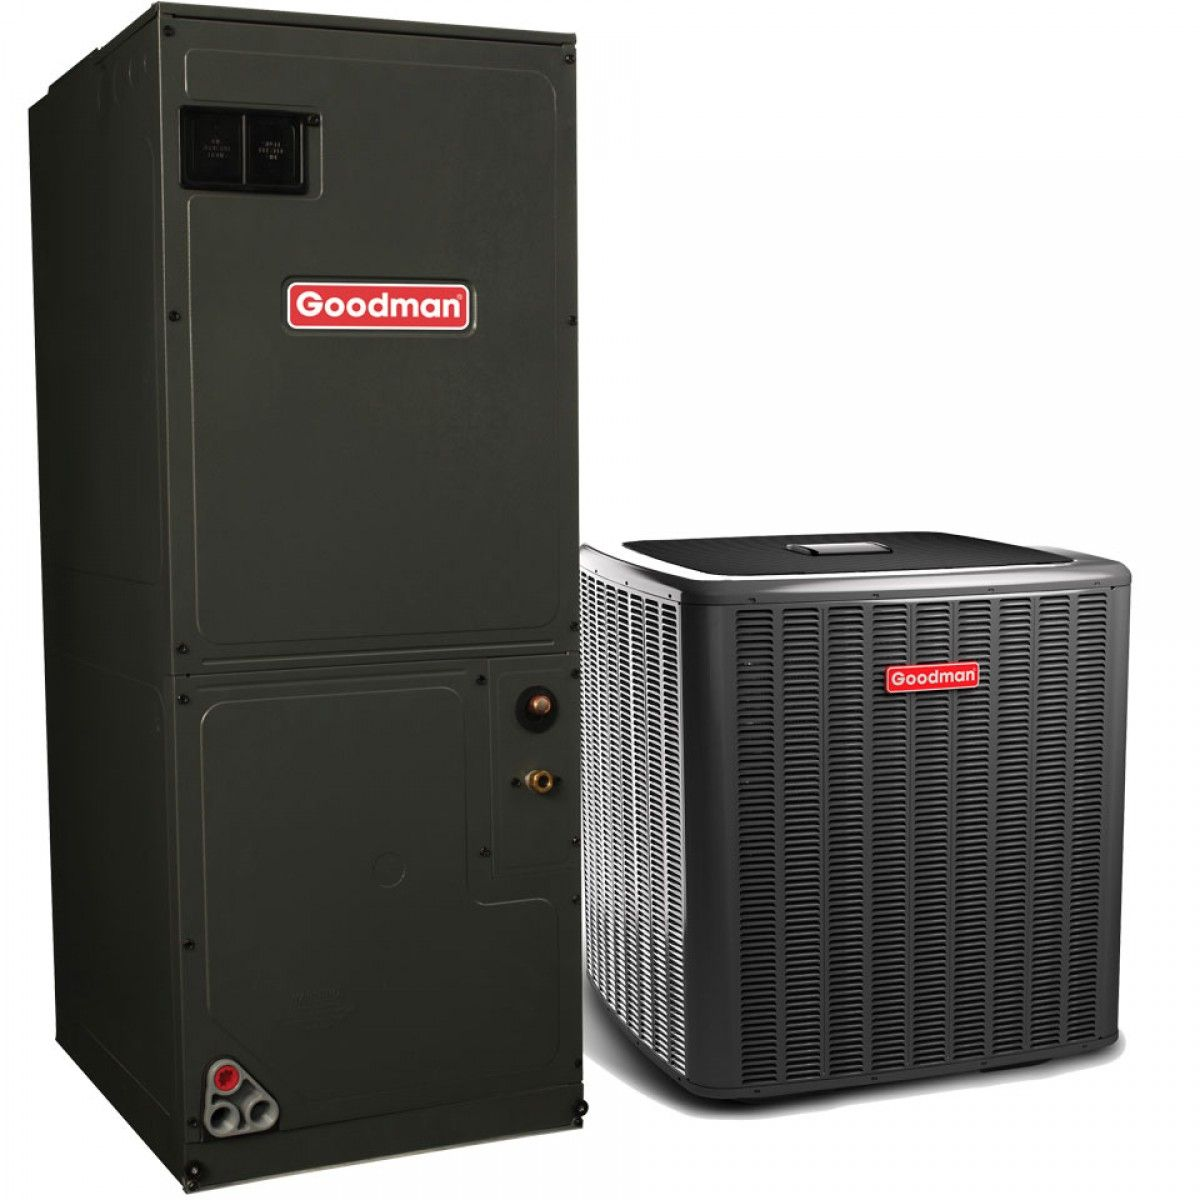 goodman ac unit. goodman 3.0 ton 18 seer r-410a two-stage air conditioning system with heat pump ac unit -